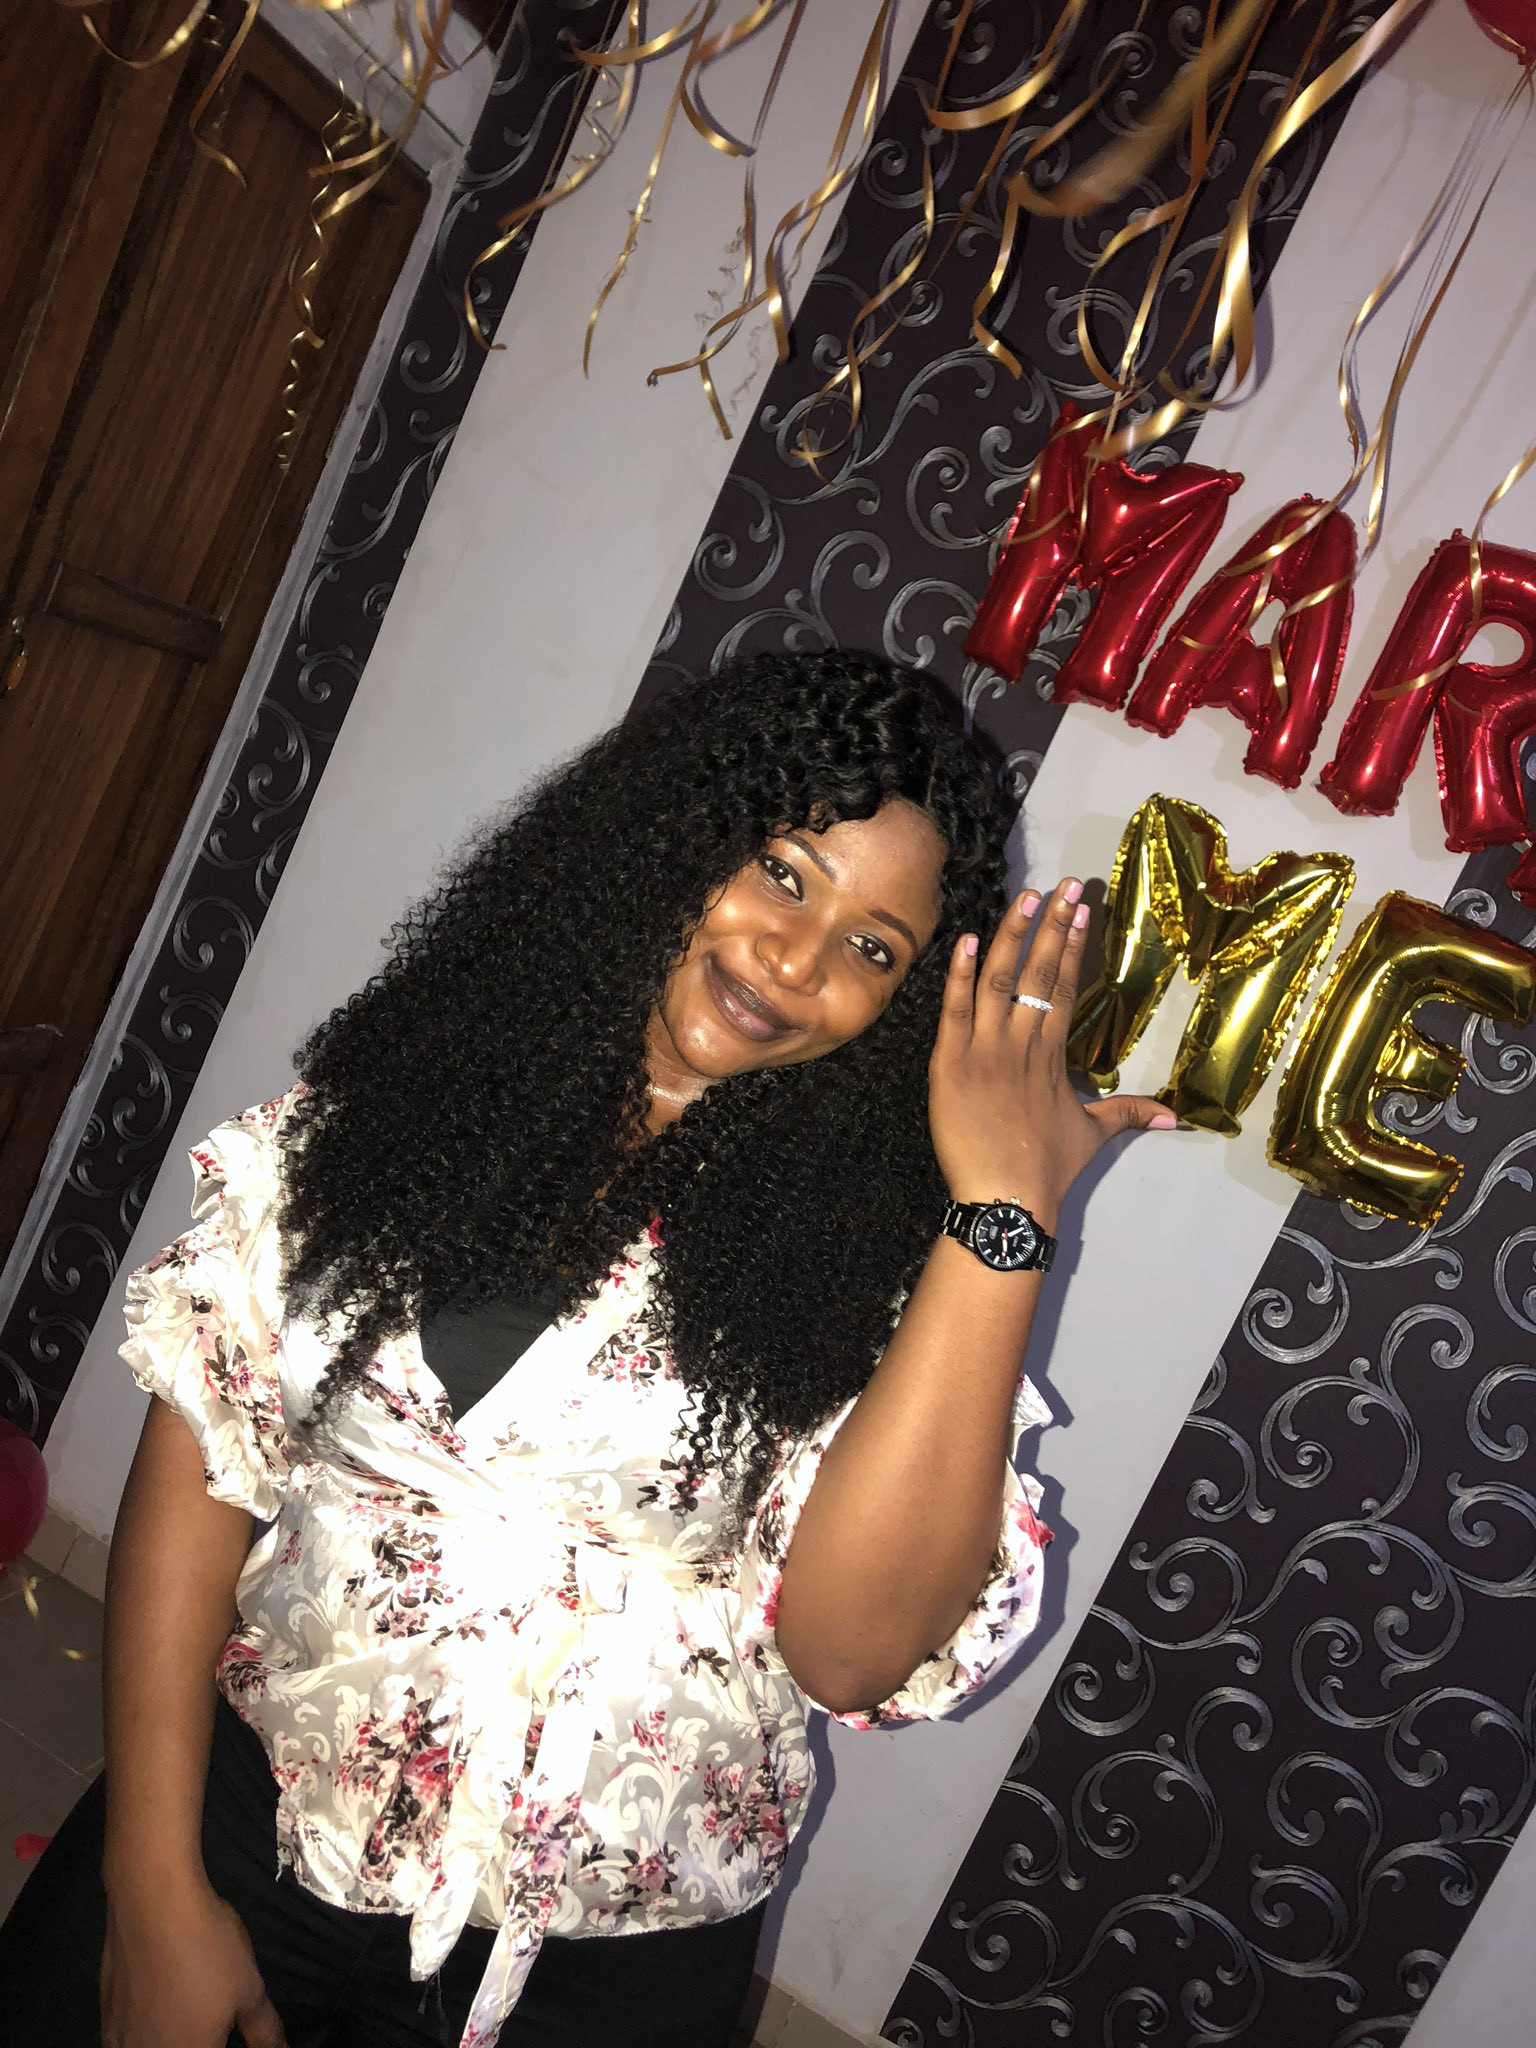 Nigerian couple are engaged after meeting on Twitter 2 years ago lindaikejisblog 3